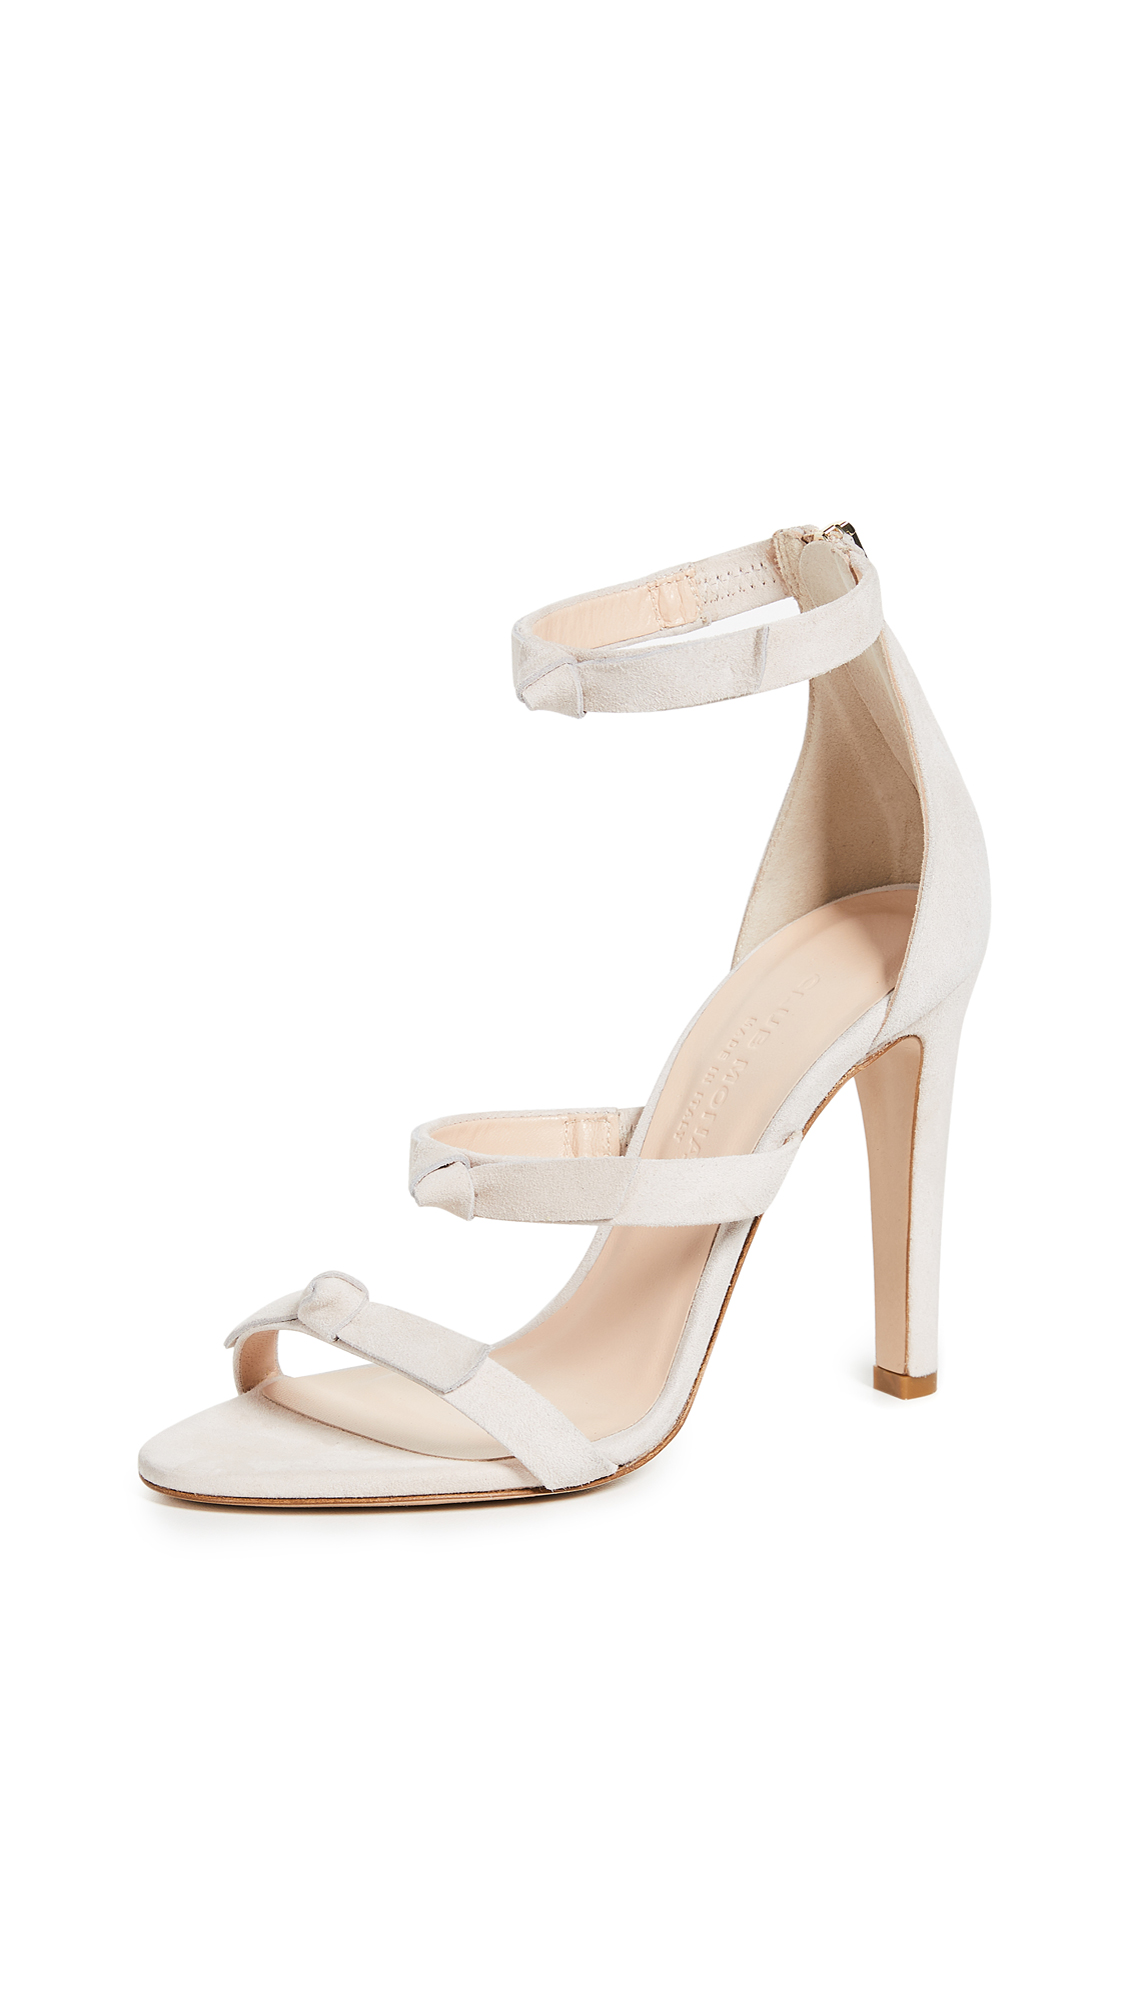 Club Monaco Cedrika Sandals - Chalk